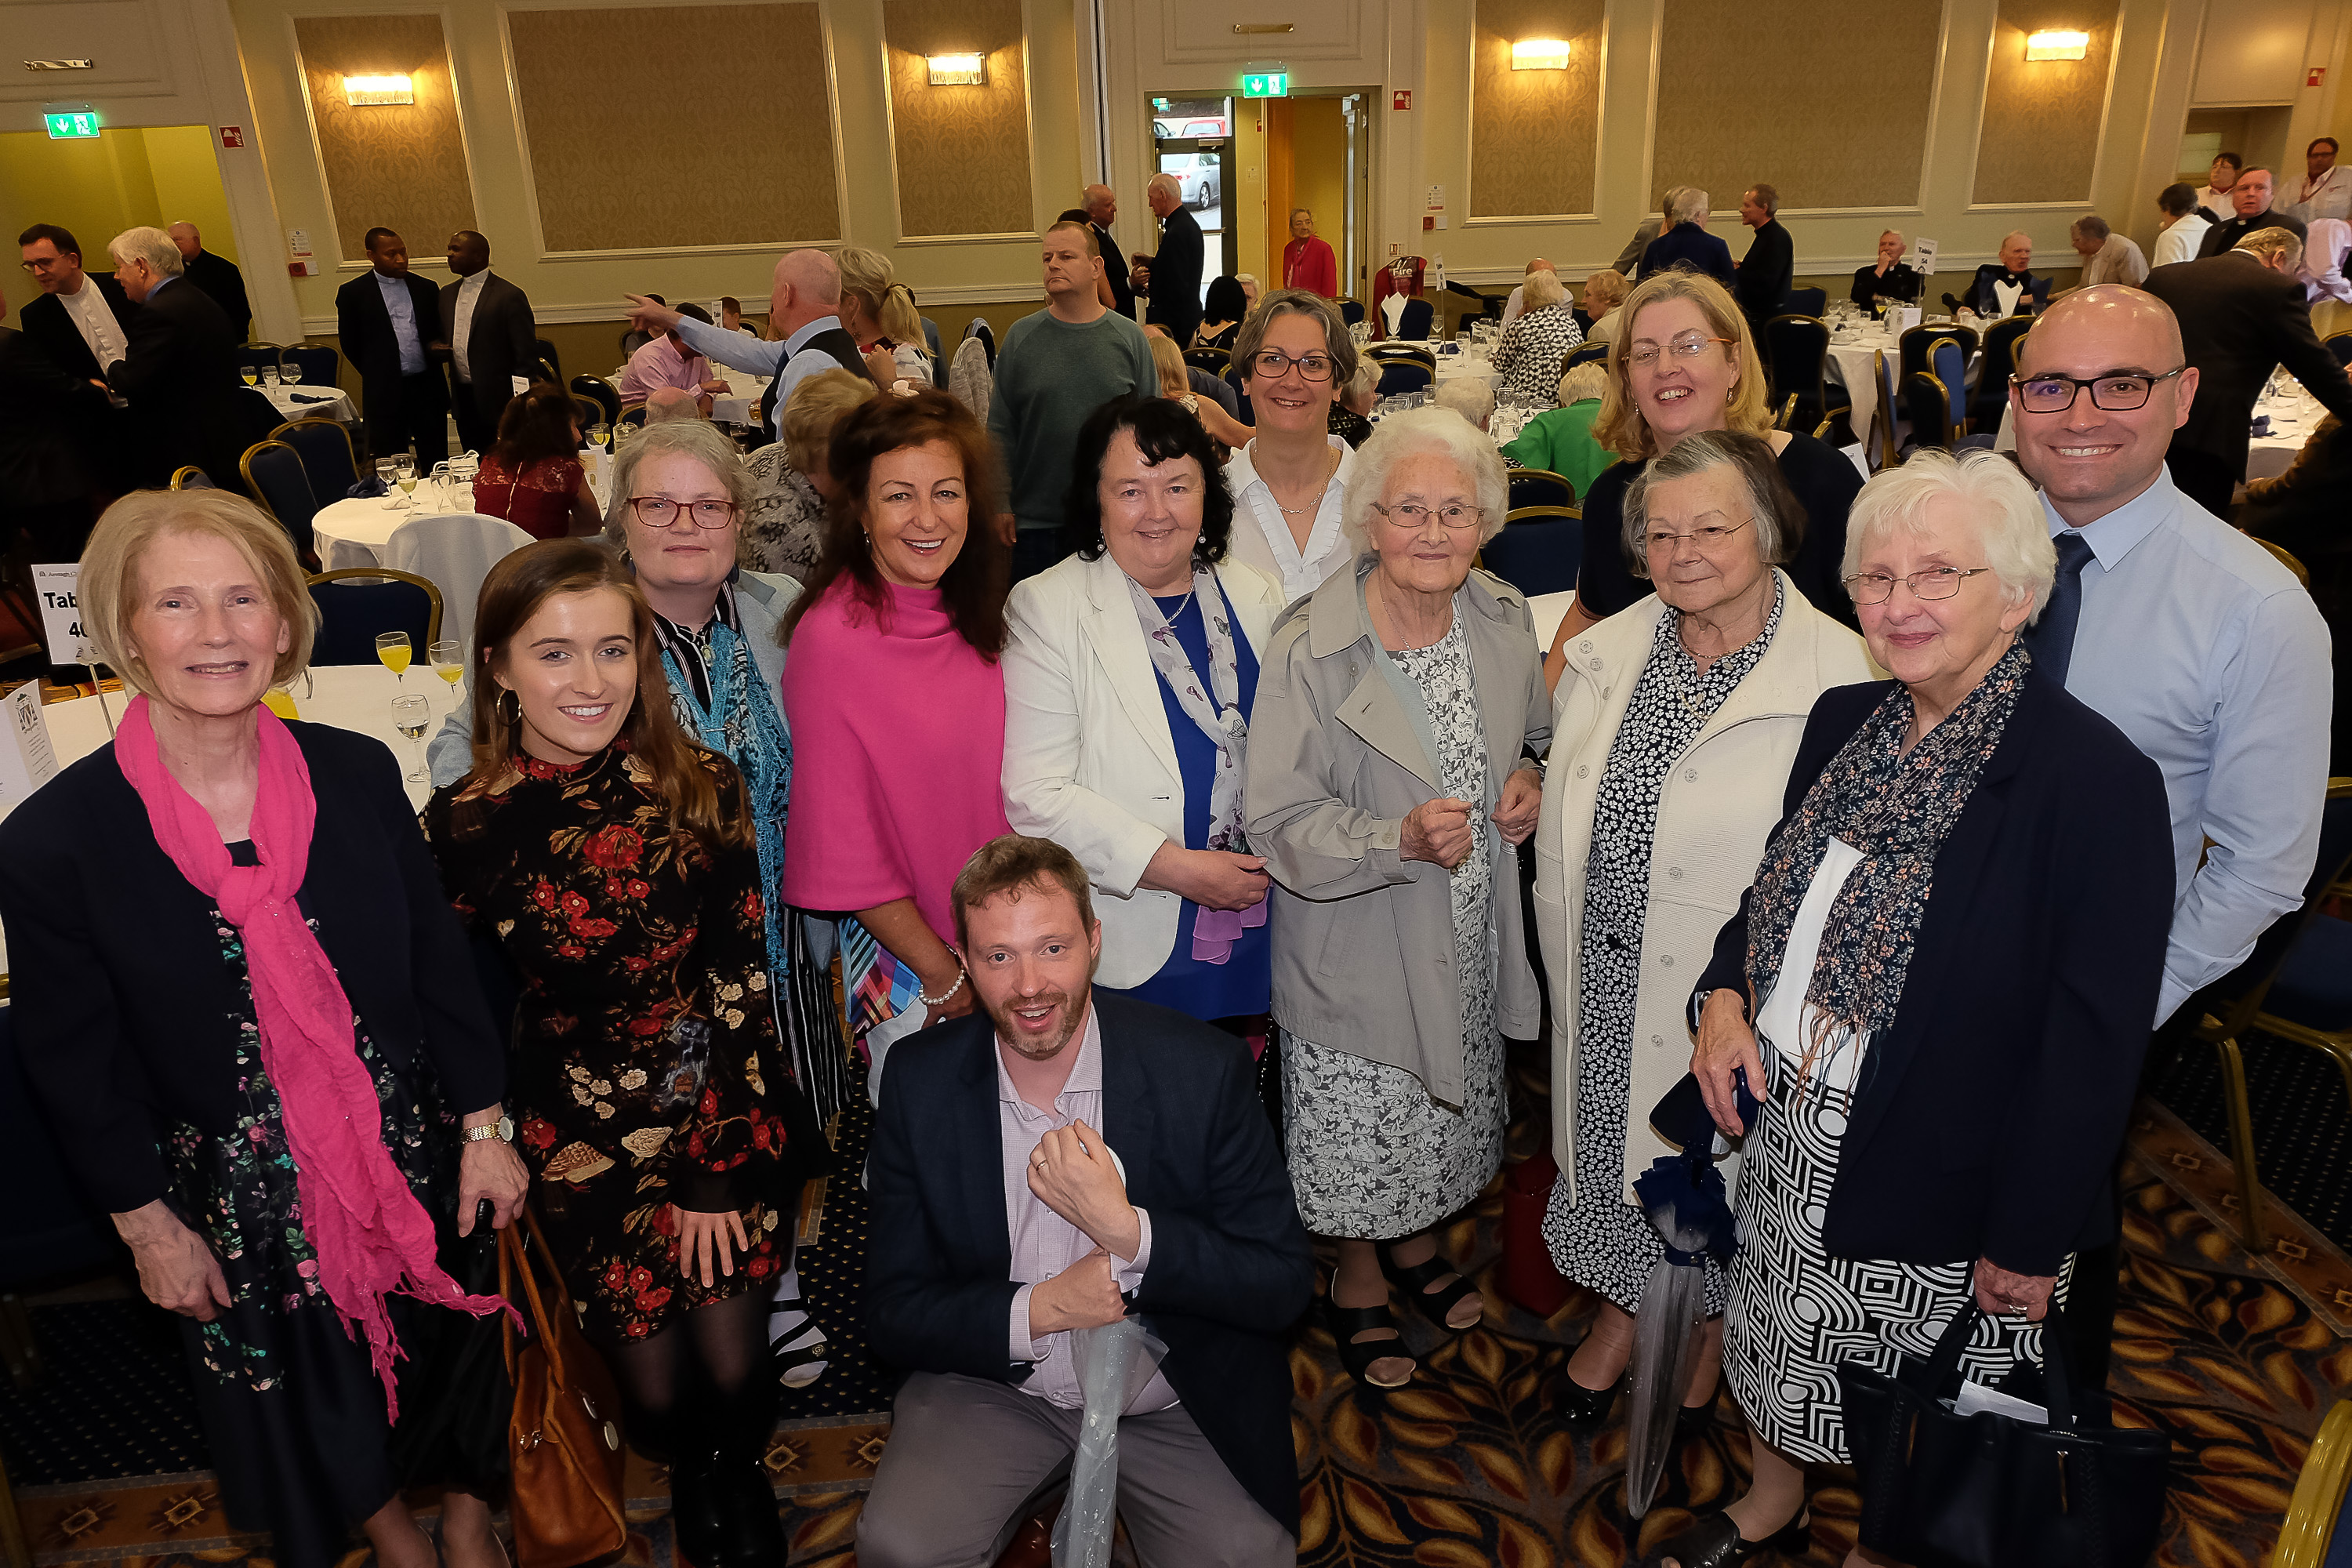 with the new Bishop Michael Router at a celebration dinner following the Bishop's Ordination